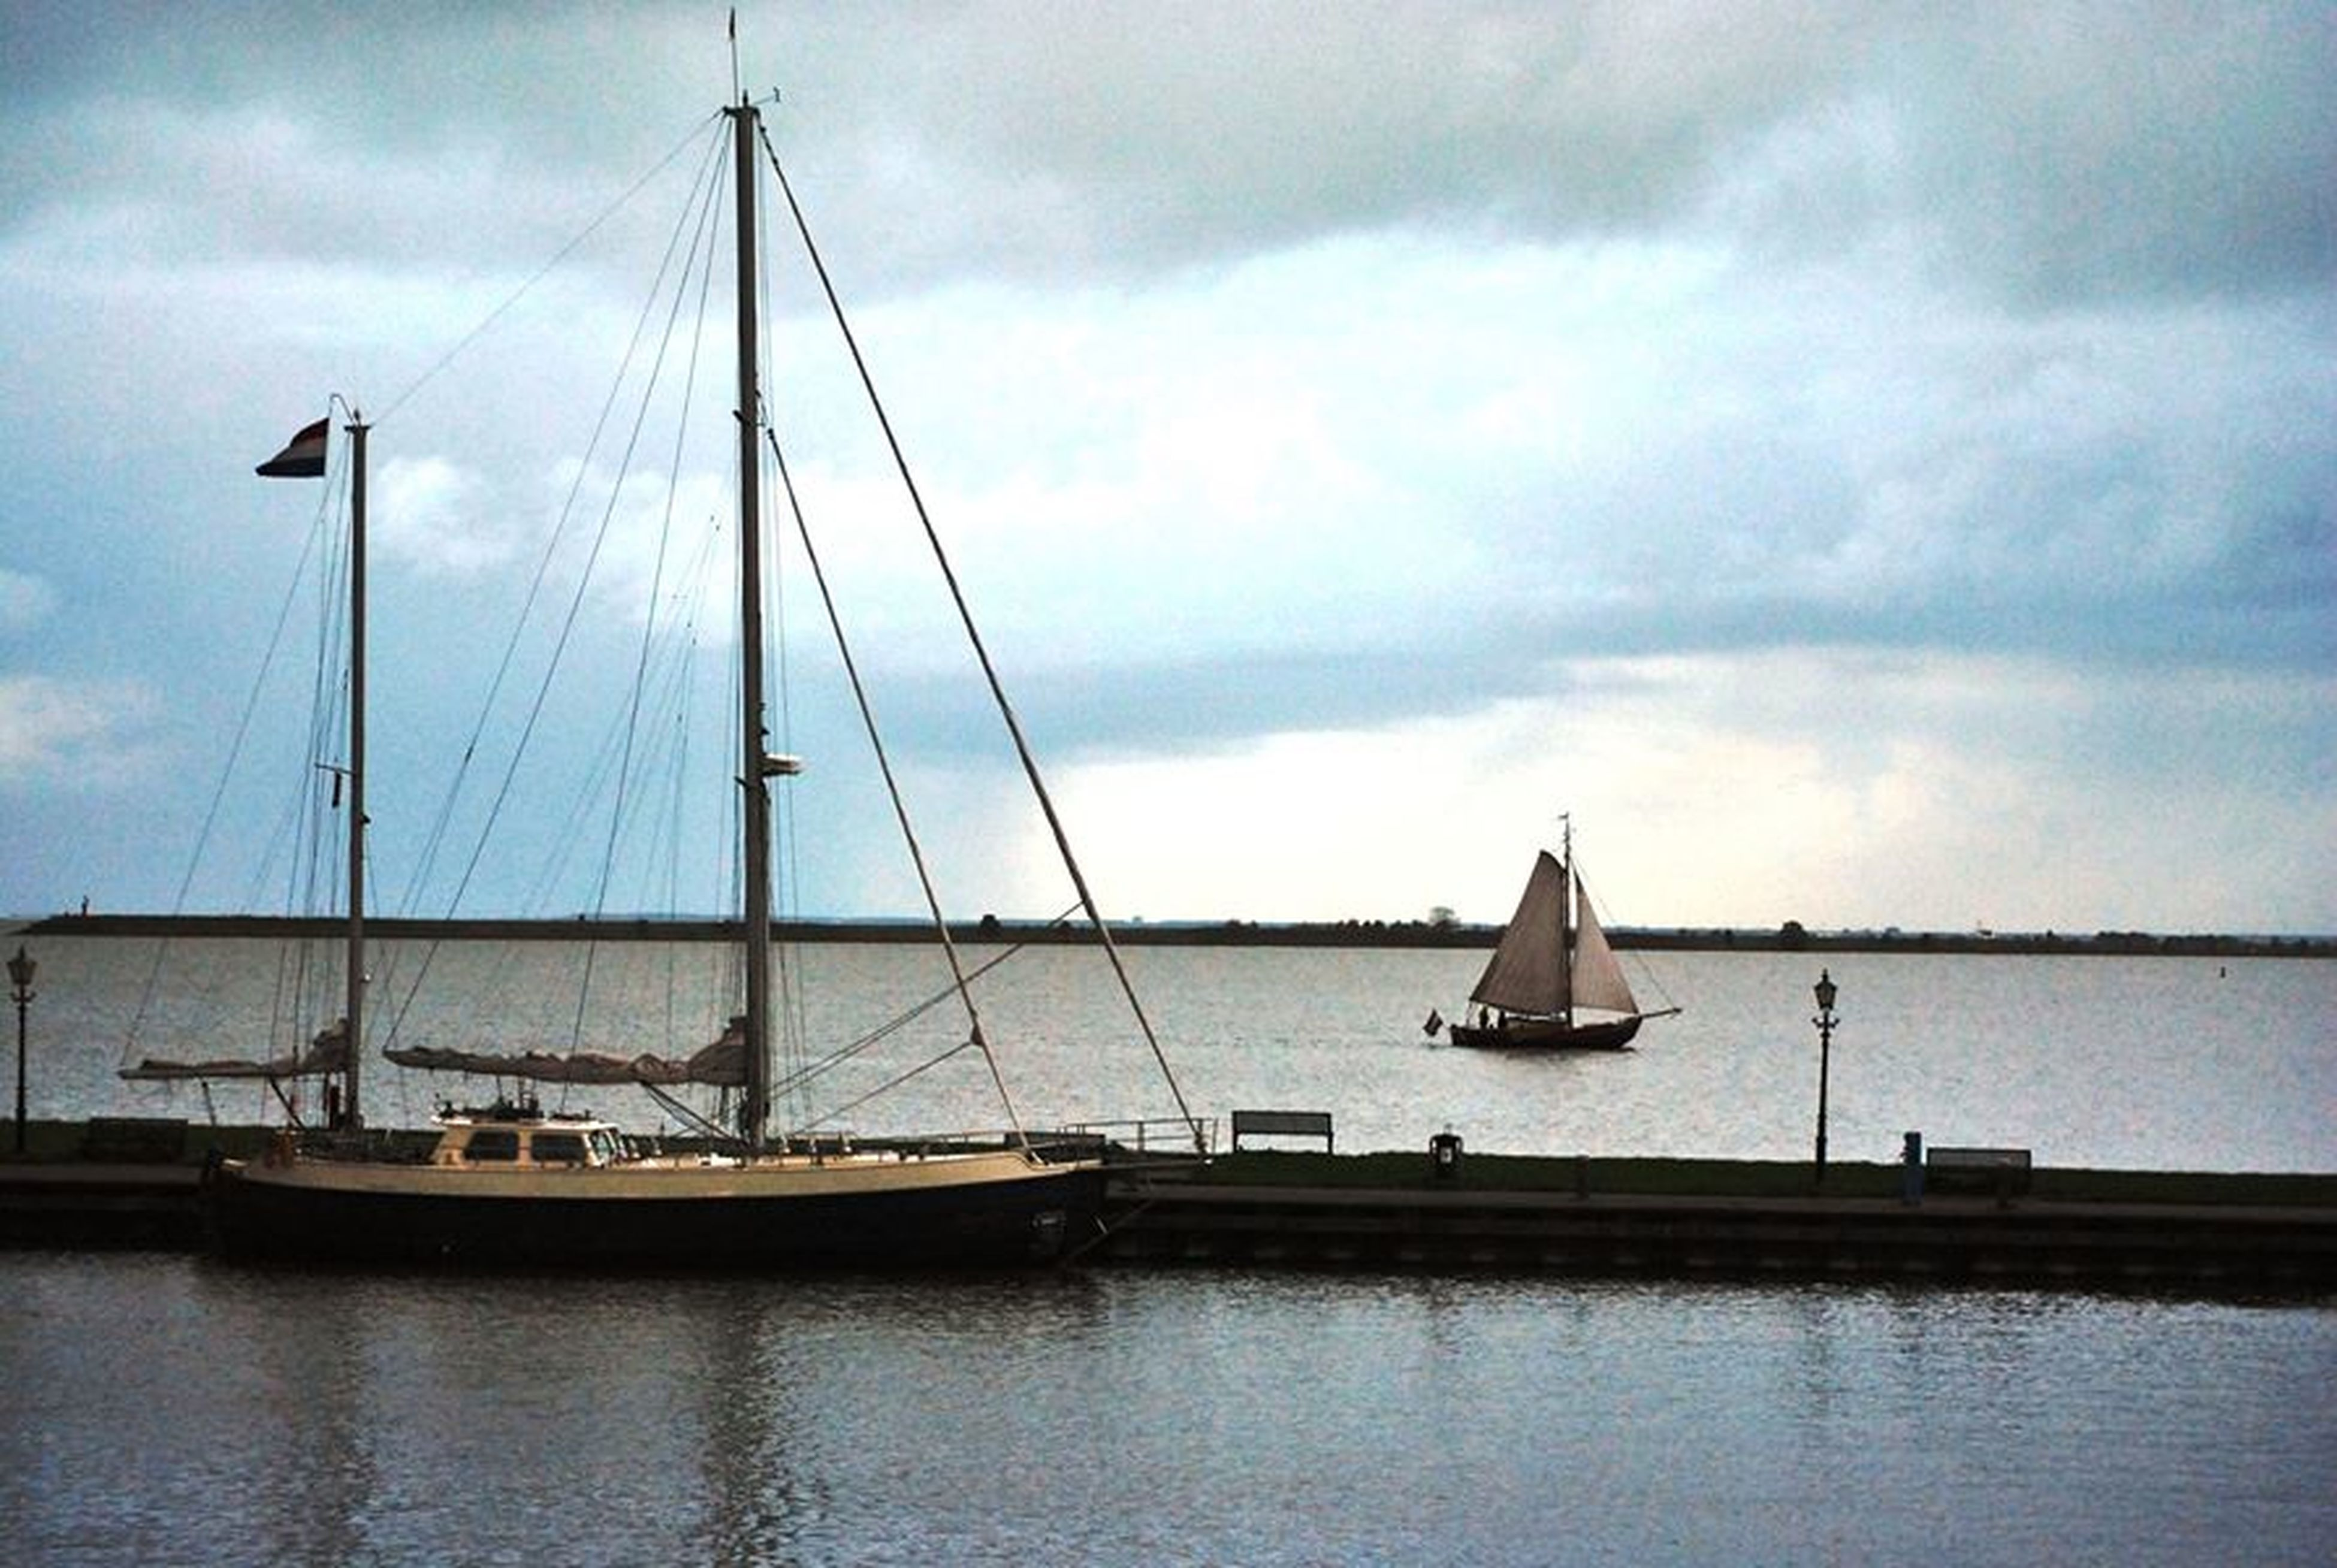 nautical vessel, transportation, mode of transport, boat, water, mast, moored, sky, sailboat, sea, cloud - sky, waterfront, sailing, cloudy, travel, cloud, journey, ship, day, nature